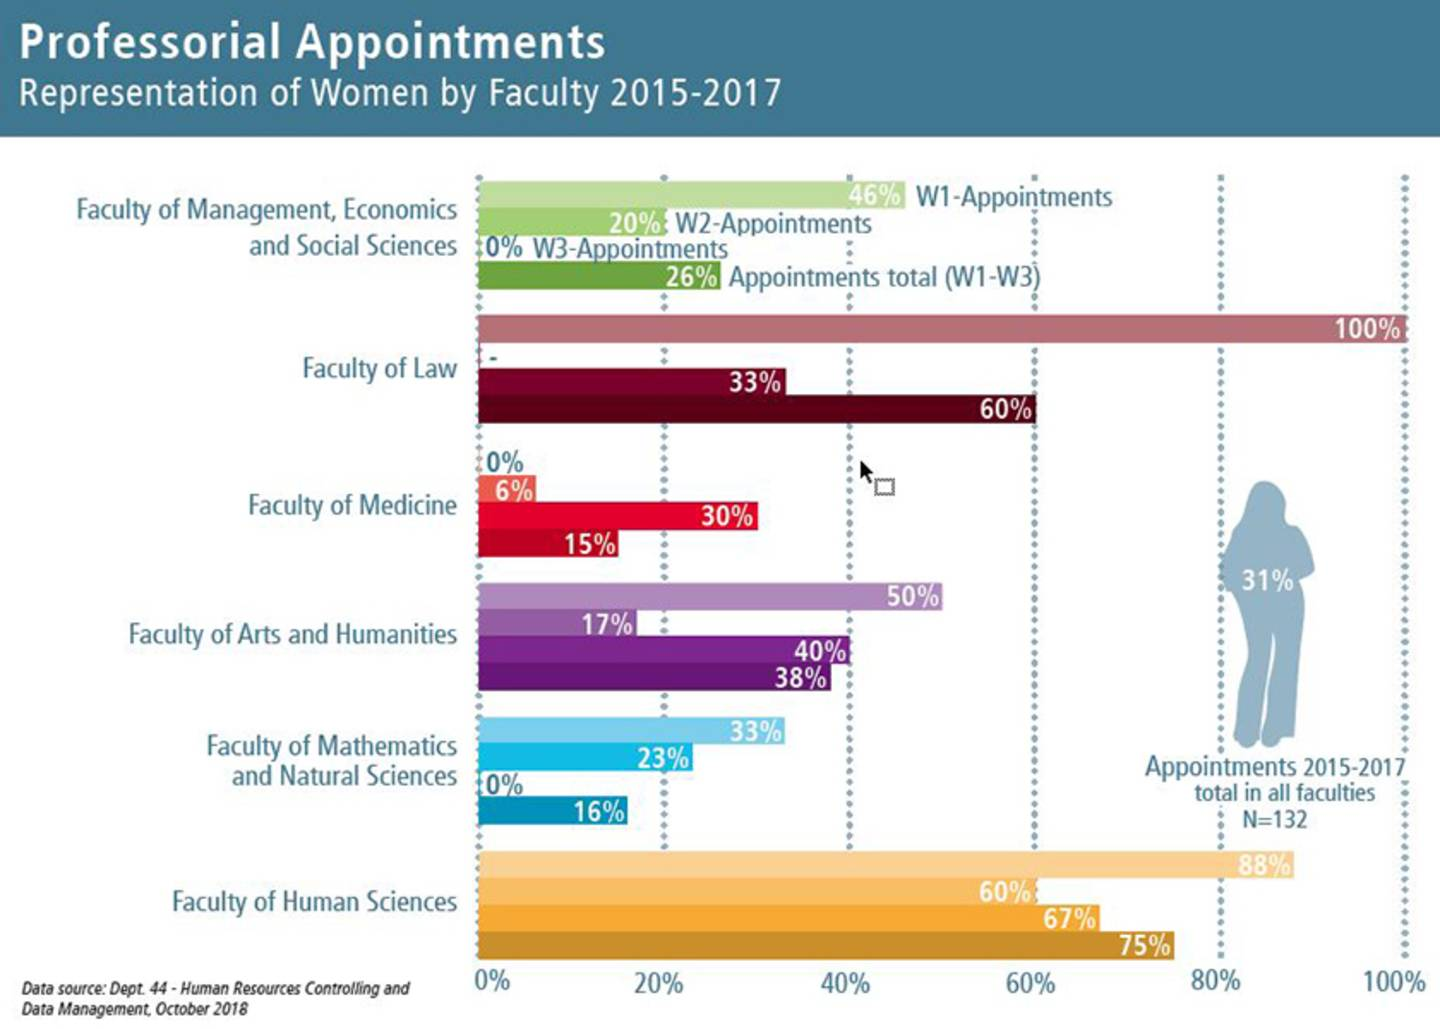 Graph with data on the proportion of women in new appointments in the years 2015 to 2017, divided by faculty.